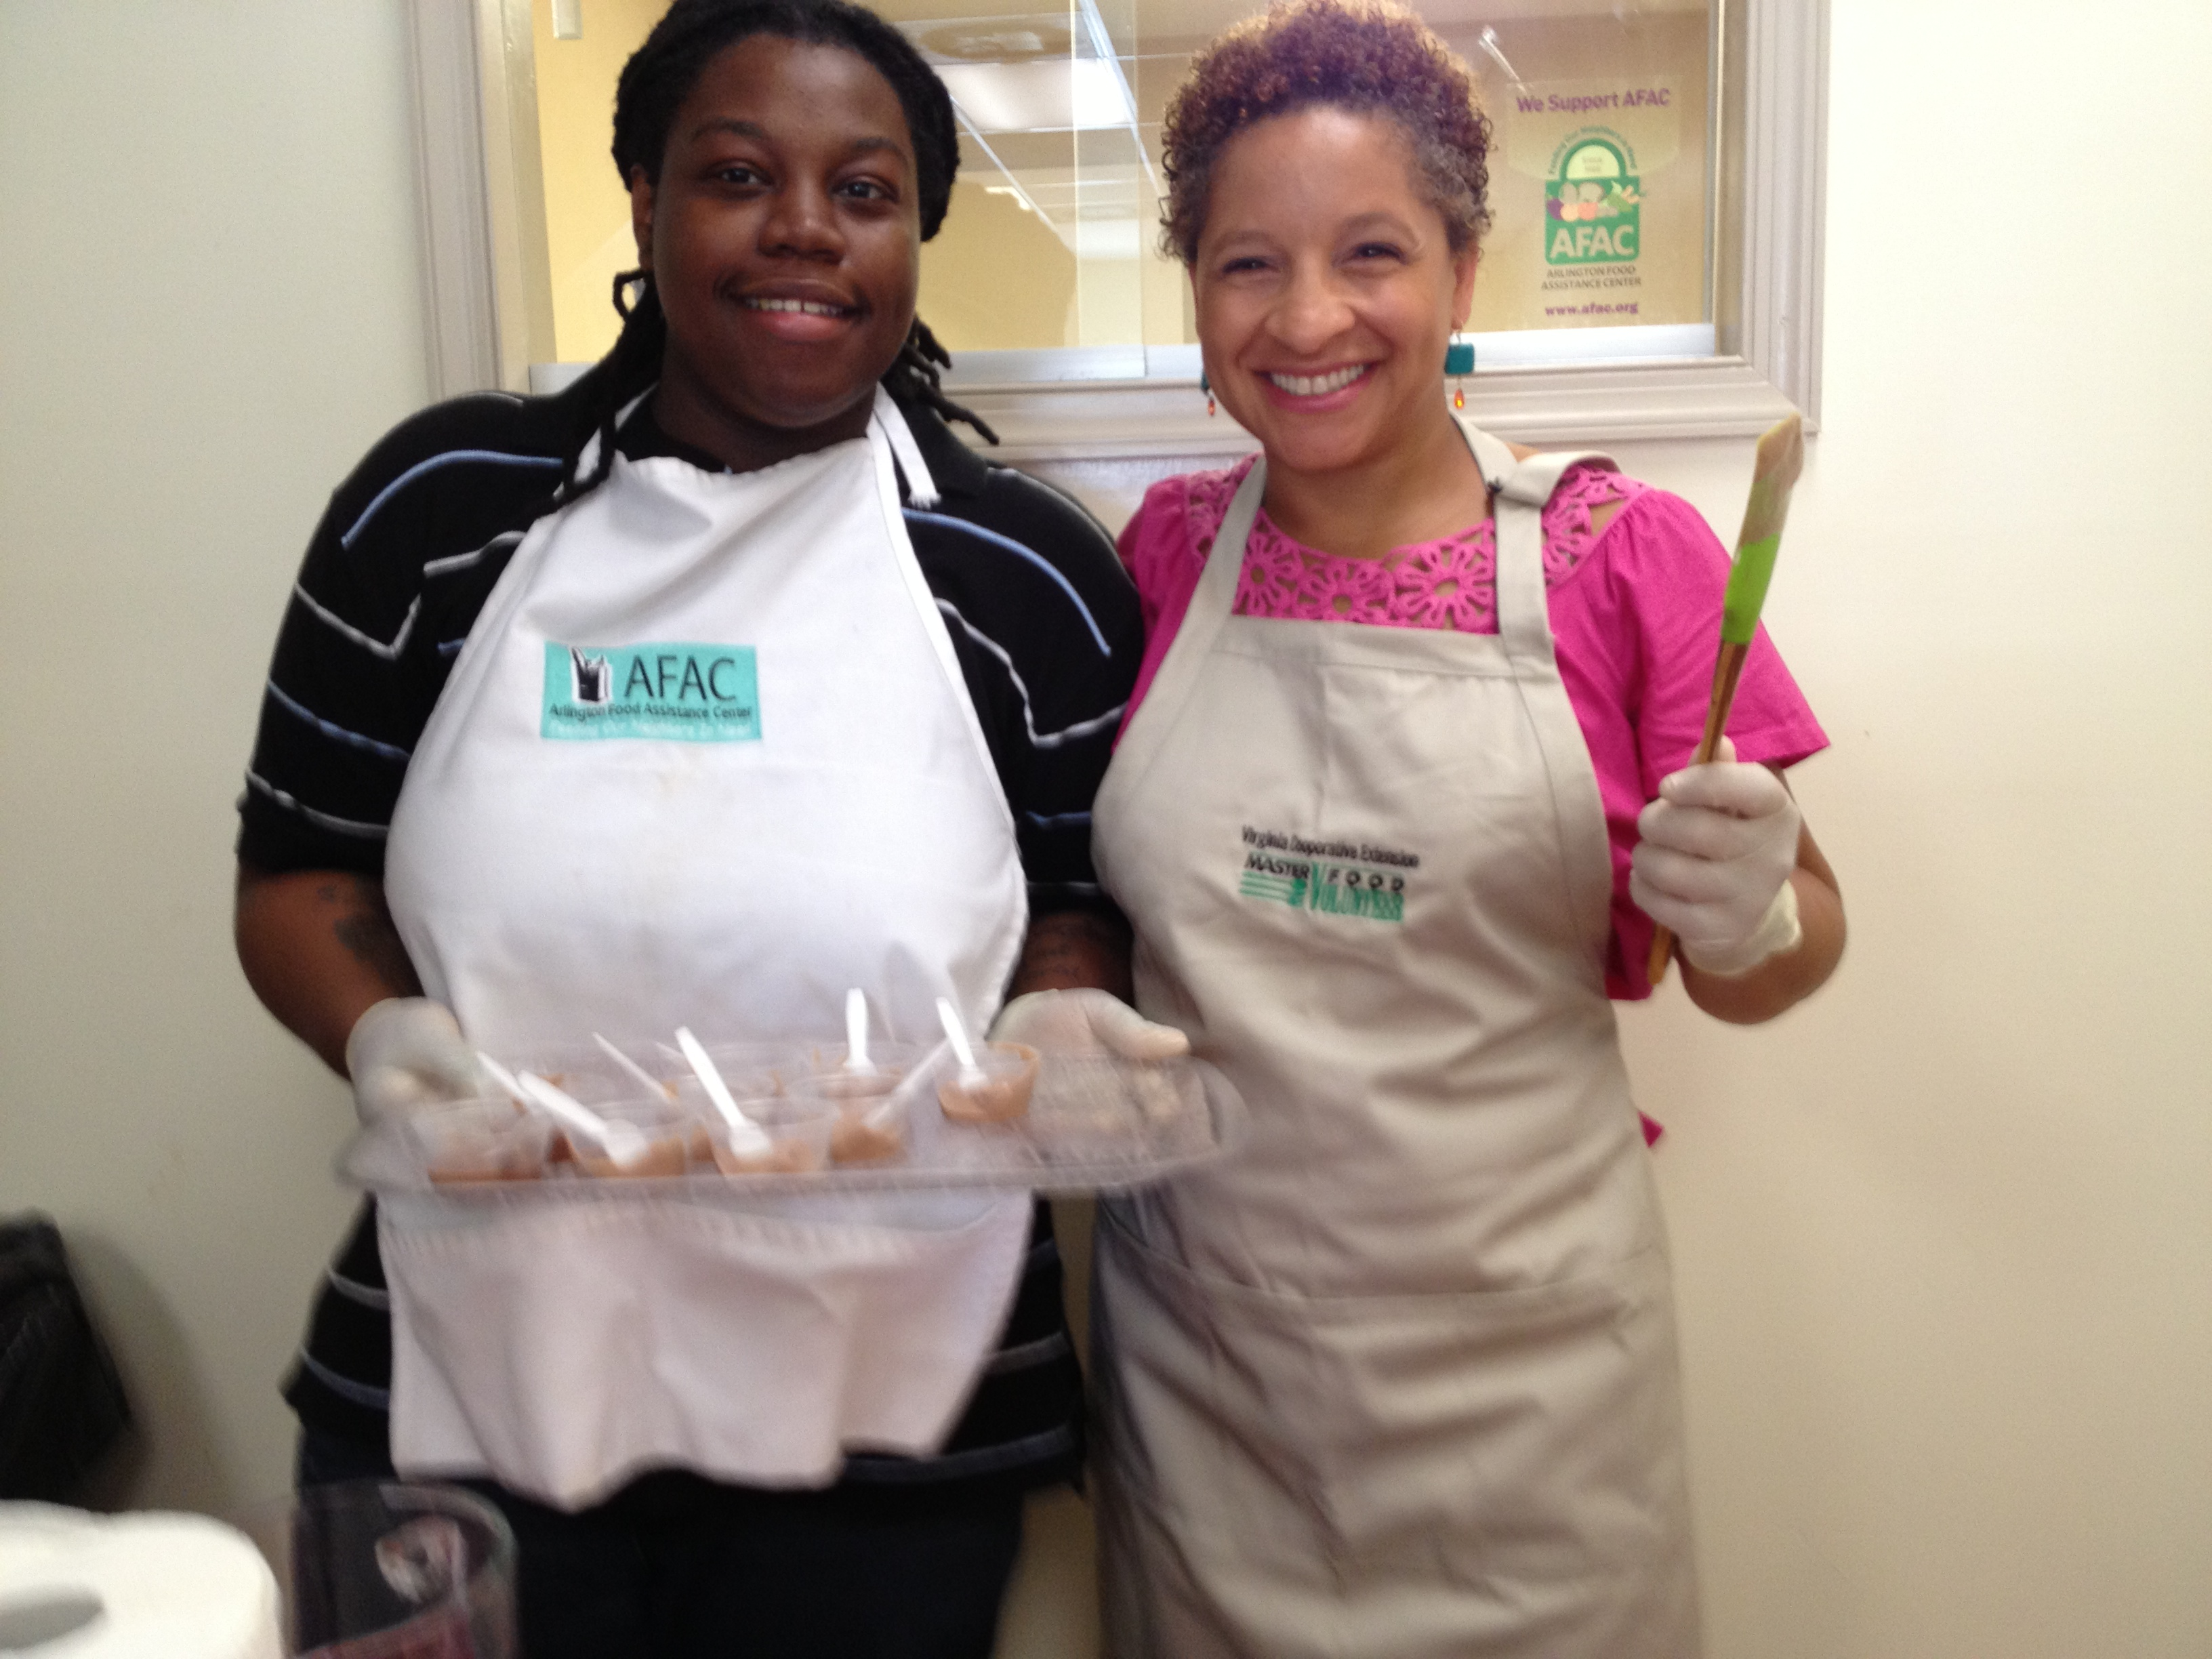 Kendra Ambrose and Catrina Moran pass out healthy sweet treats at AFAC in Arlington